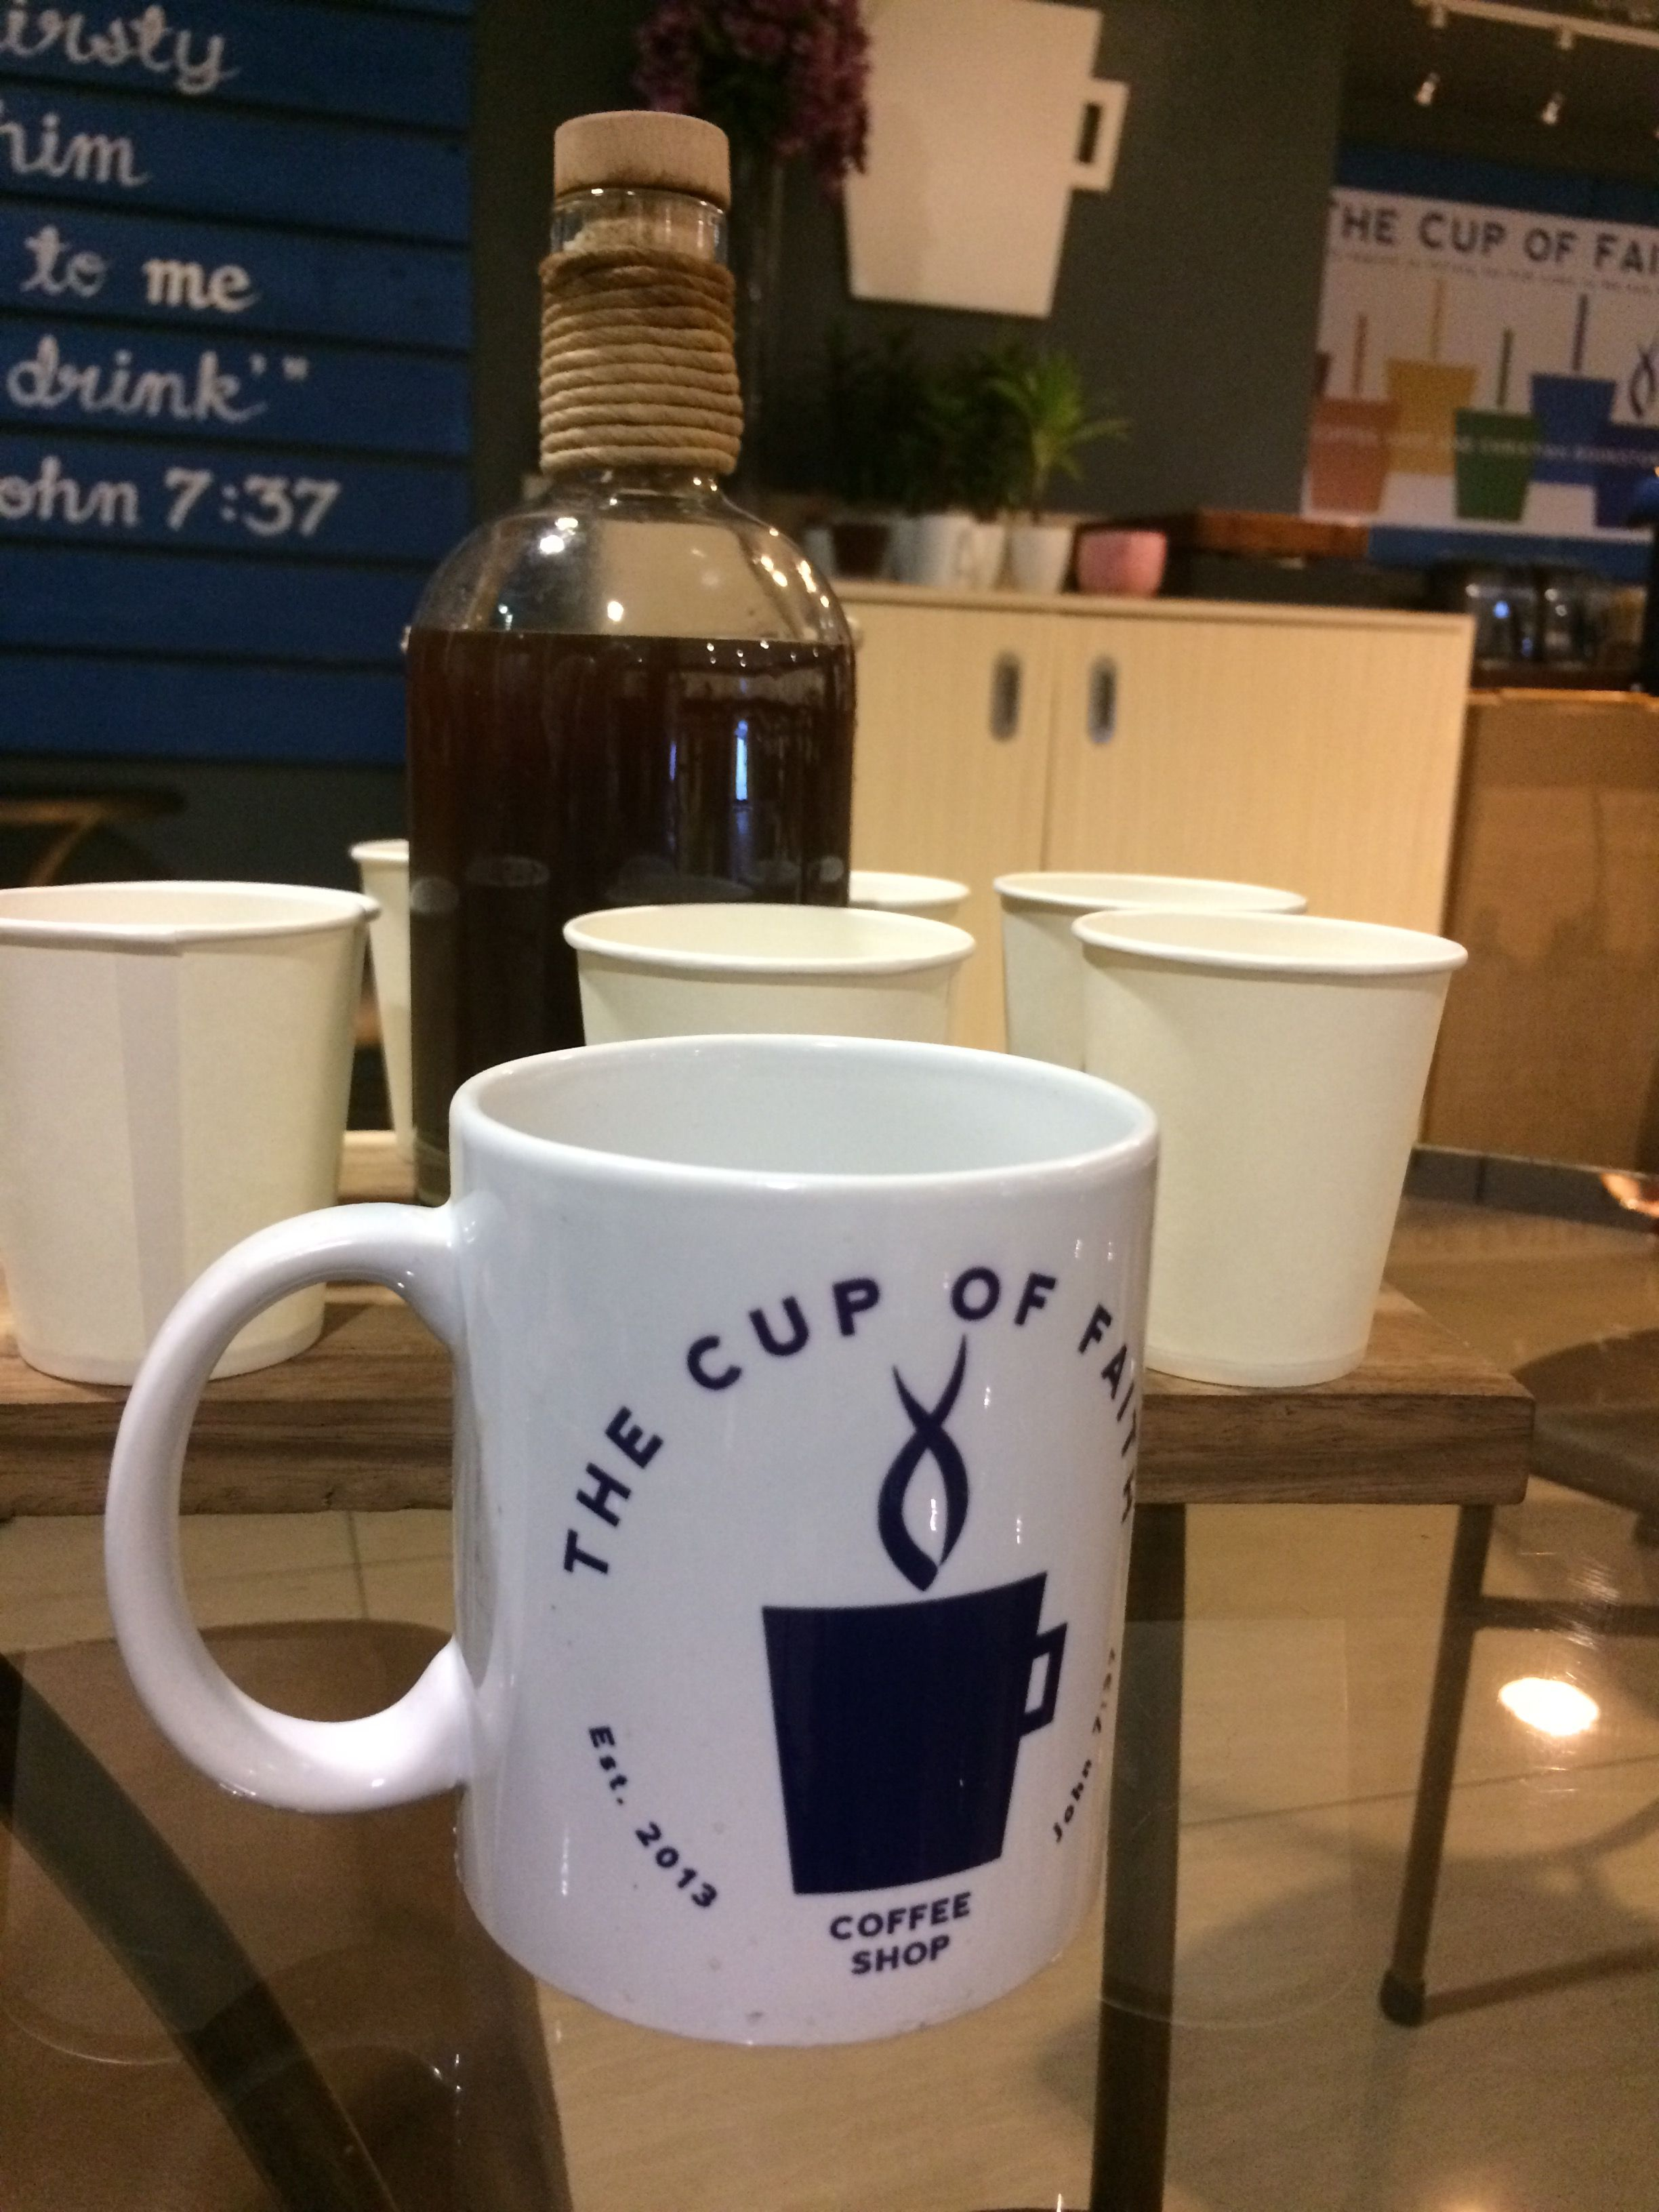 Trying a new cold brew at The Cup of Faith Fine coffee